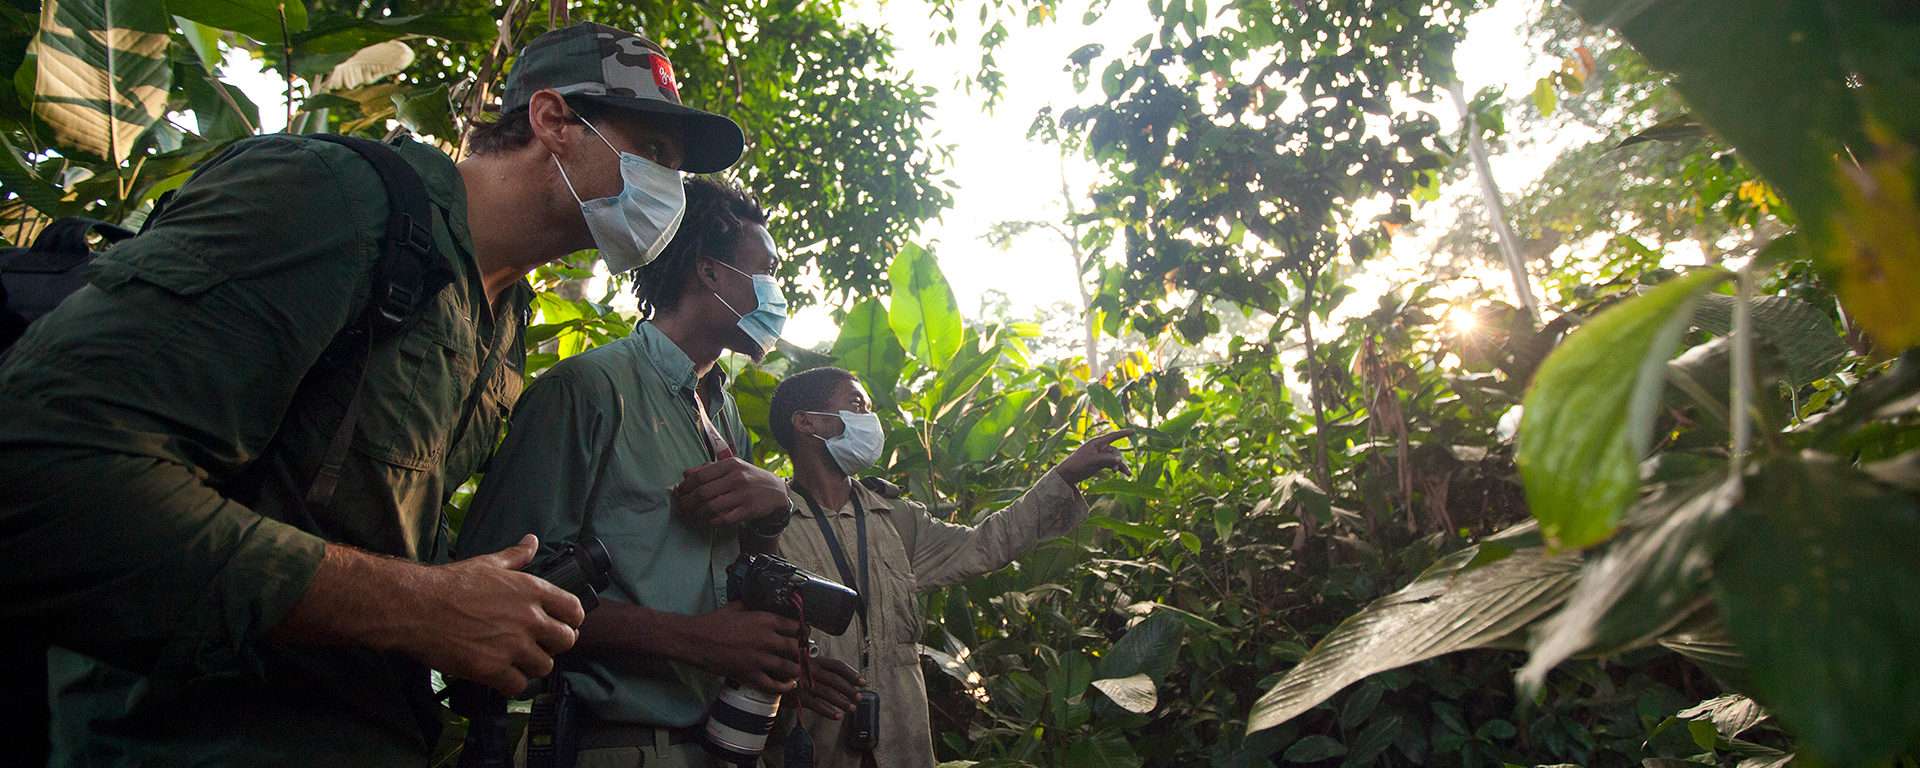 Dress in browns, greens and greys, and wear trousers and long-sleeved shirts. In some areas, your guide will hand out disposable masks as gorillas are susceptible to human diseases.